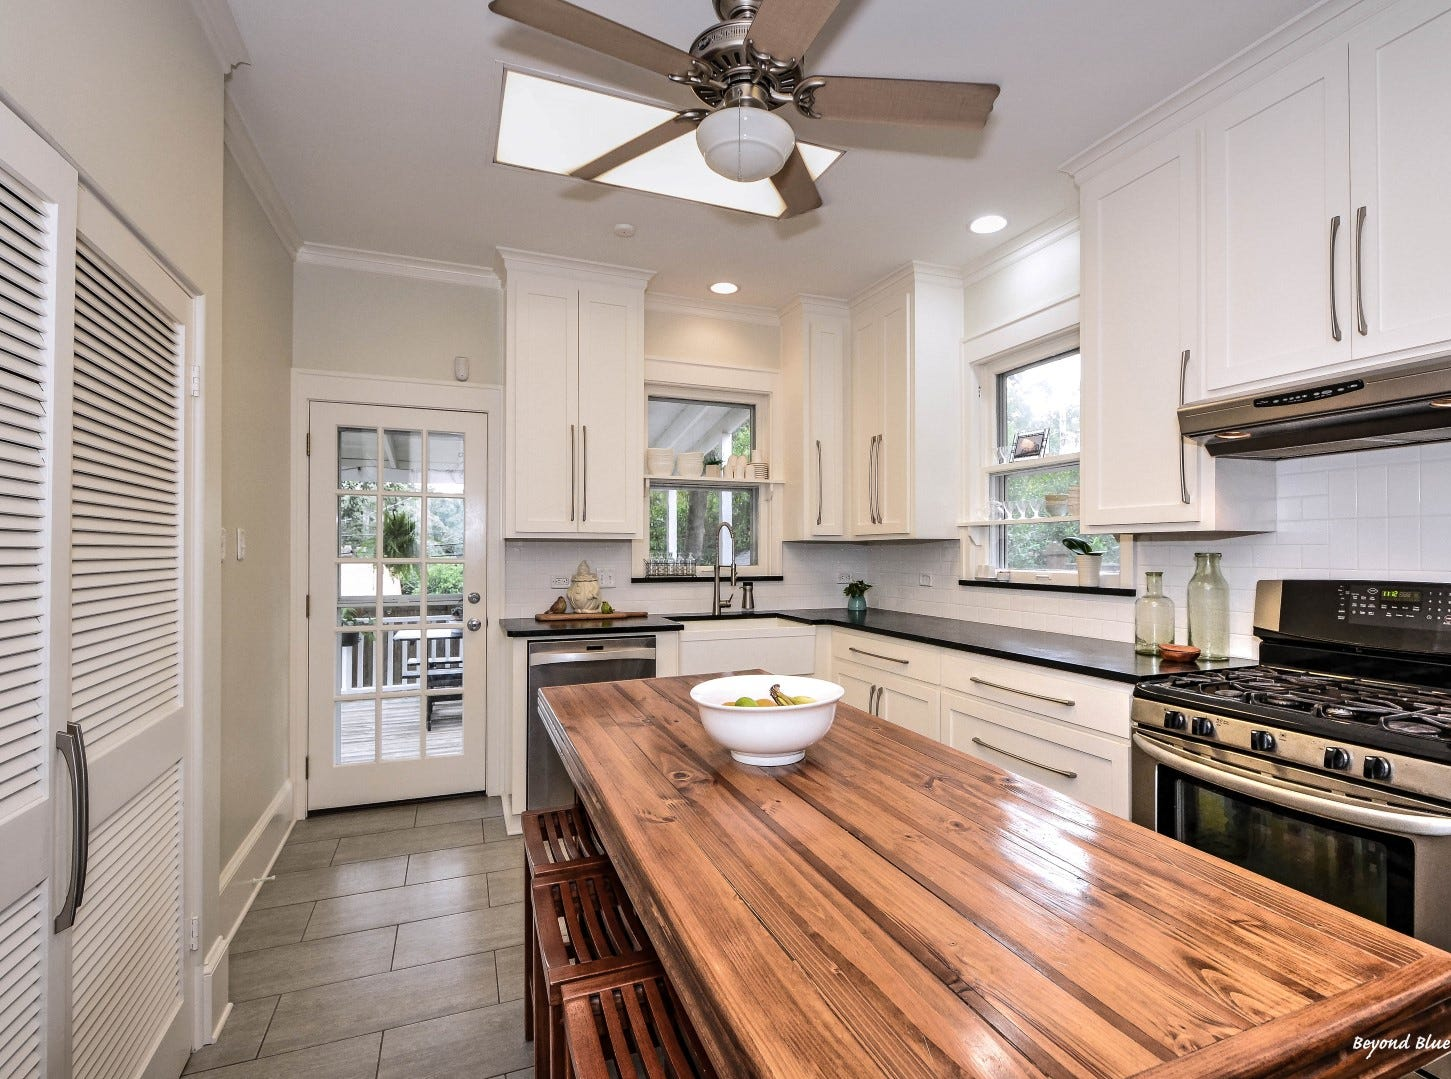 643 Dudley Drive,   Shreveport  Price: $247,000  Details: 3 bedrooms, 2 bathrooms, 1,789 square feet  Special features: 1920s South Highlands historic beauty with all the modern upgrades.  Contact: Danielle Cummings, 572-7926